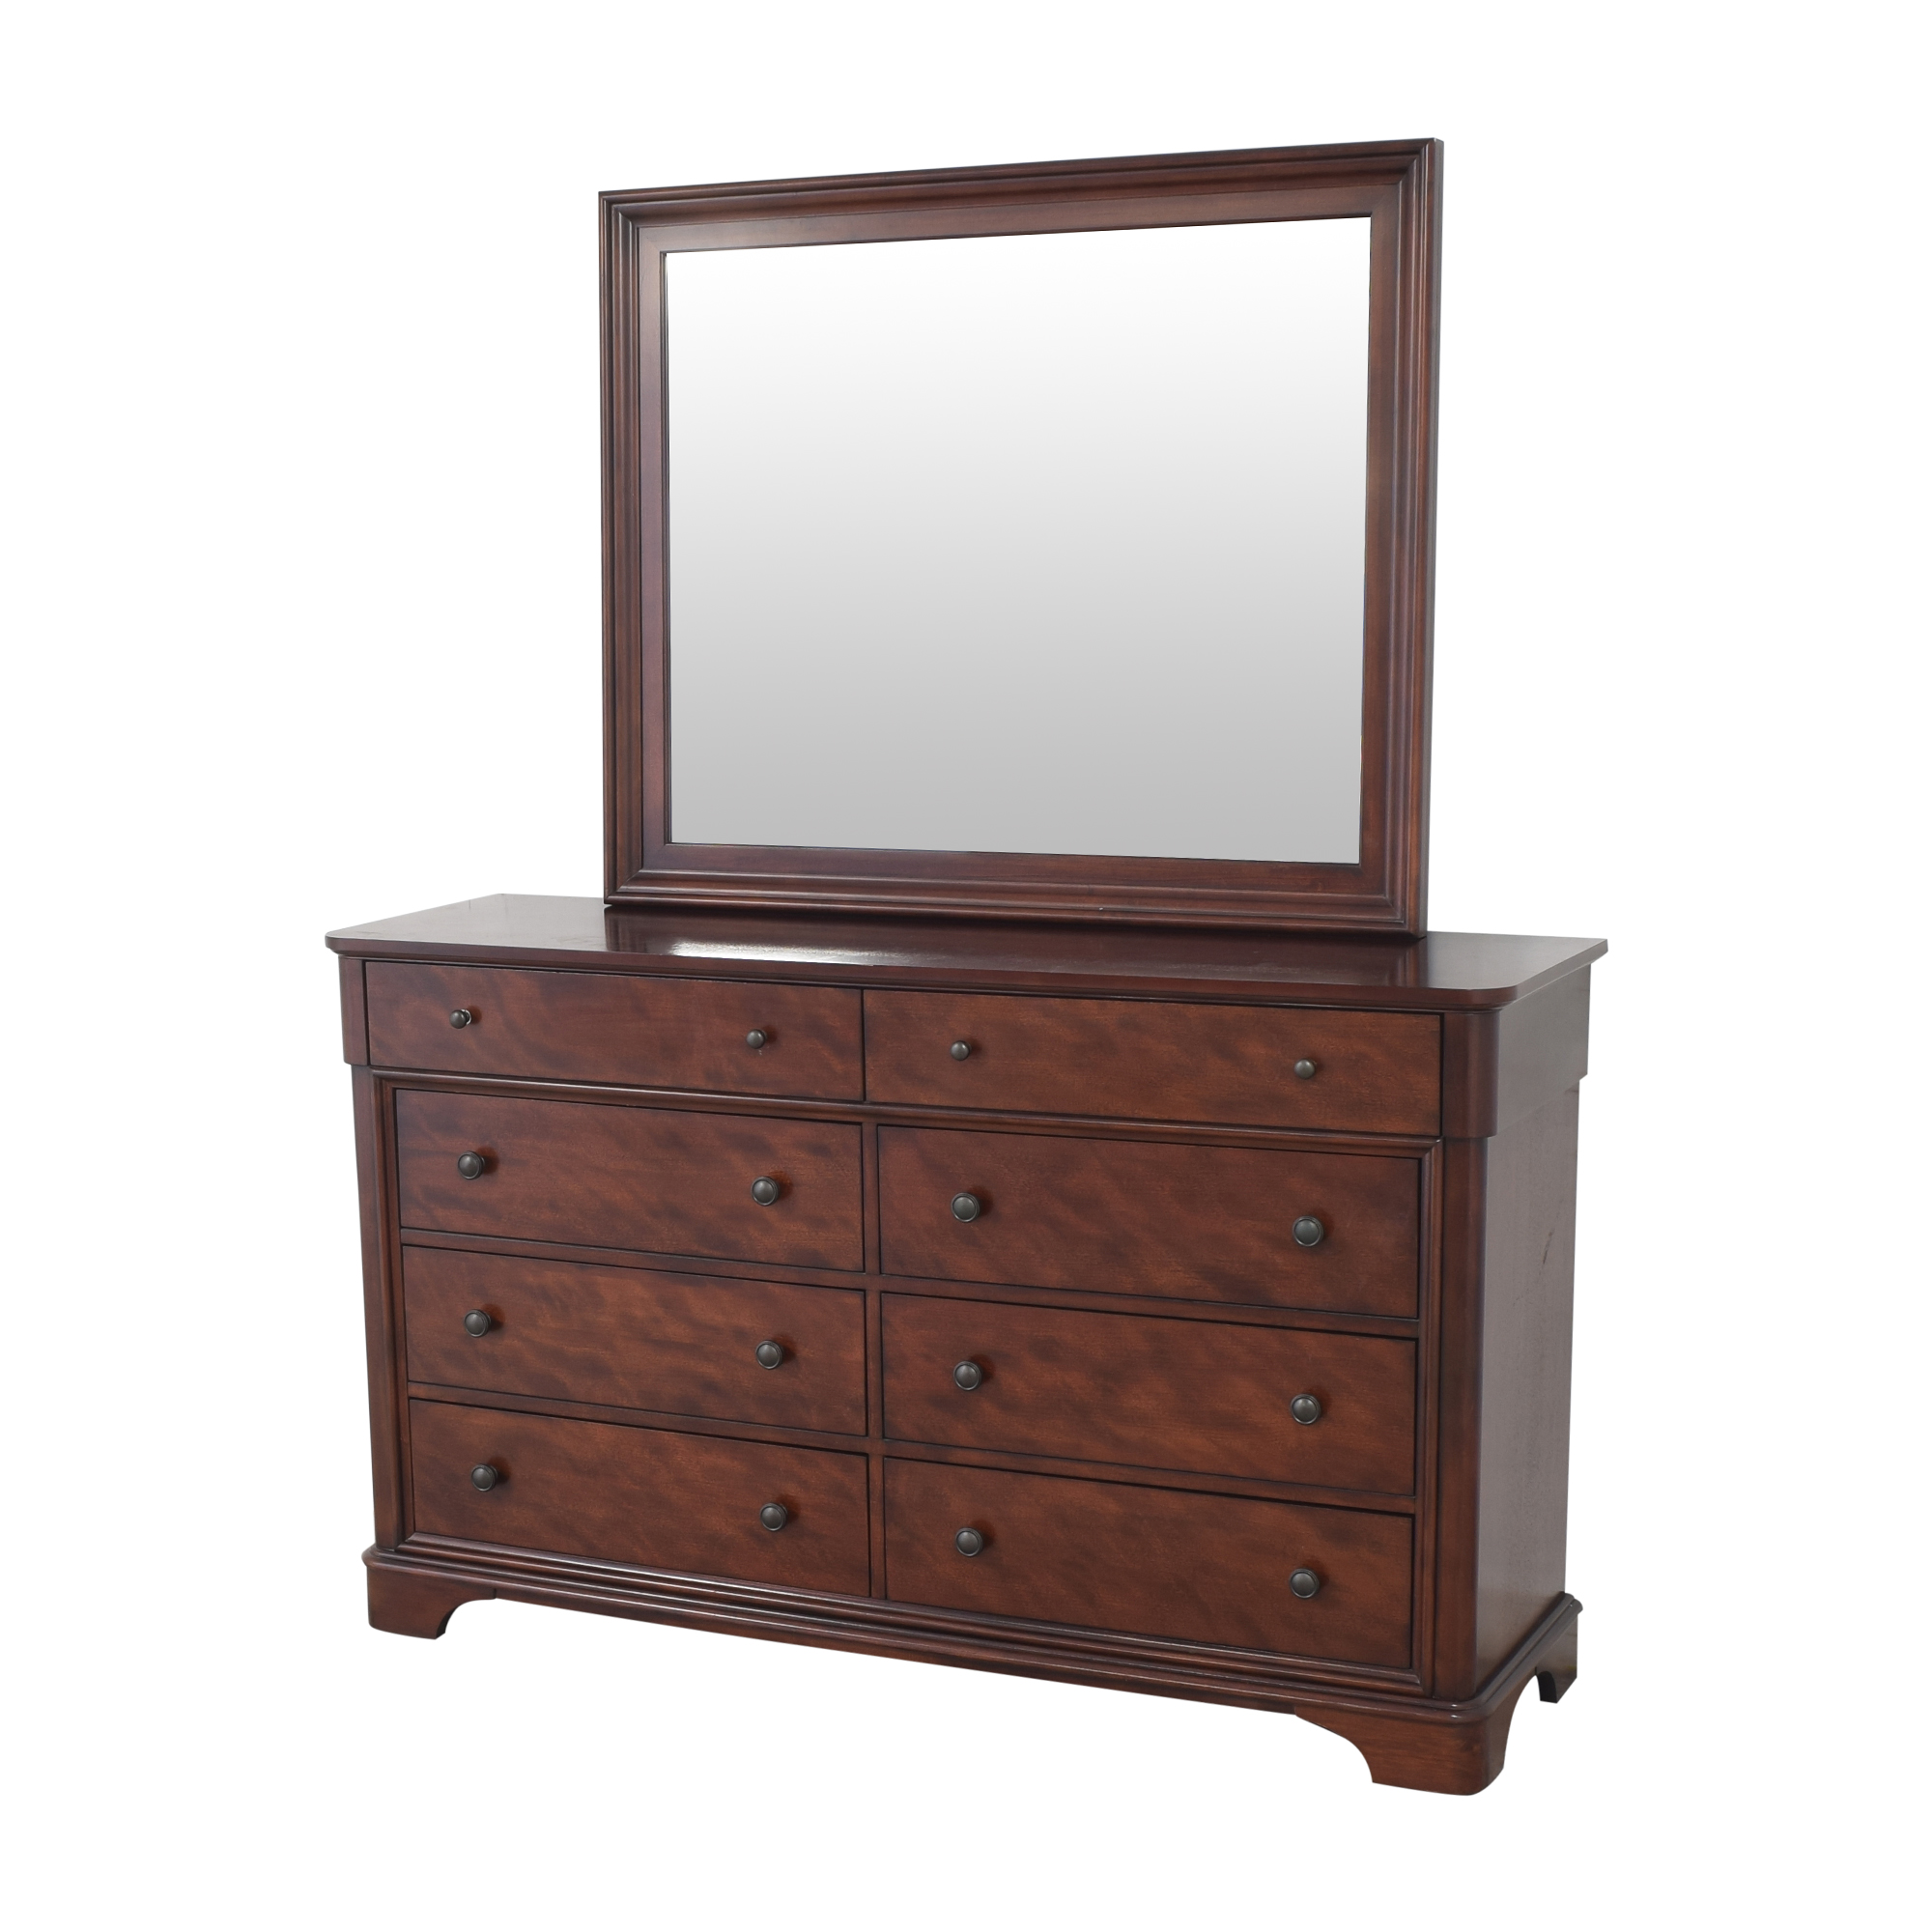 Legacy Classic Furniture Legacy Classic Furniture Double Dresser with Mirror